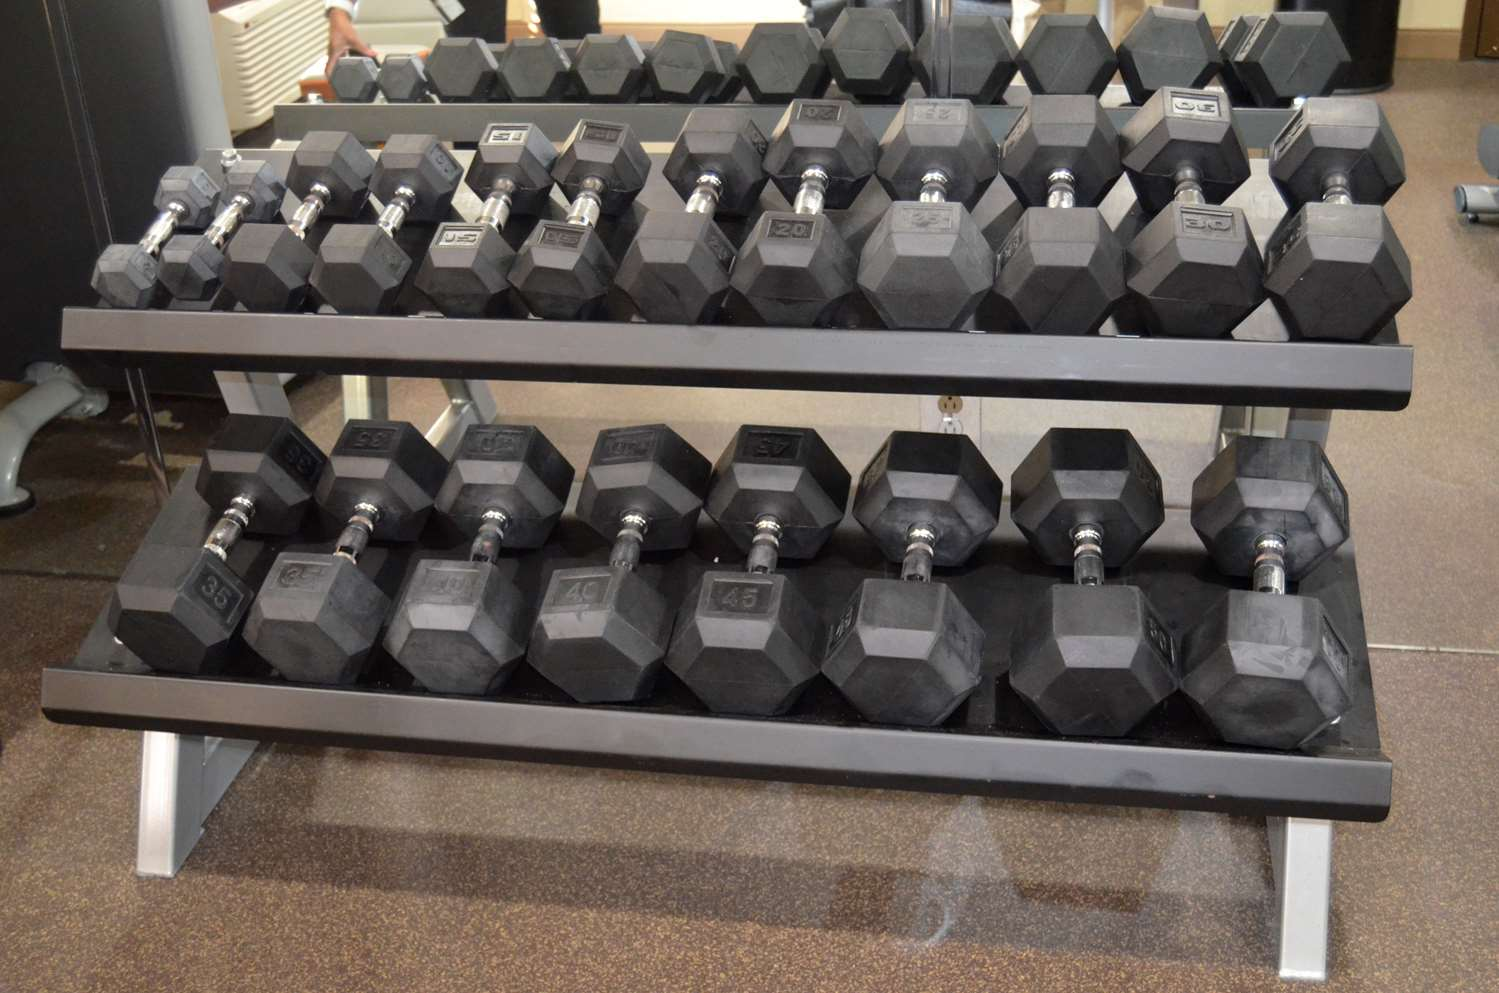 Health and Fitness 149 of 366